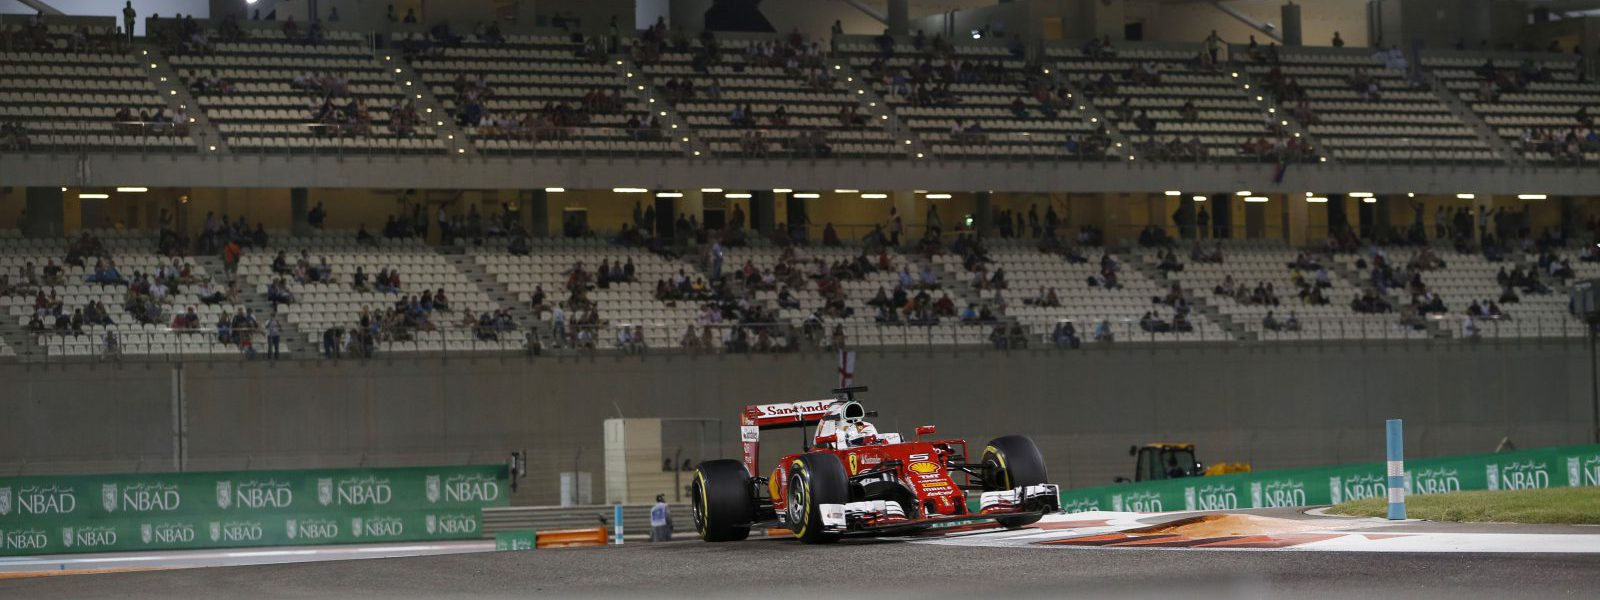 Motorsports: FIA Formula One World Championship 2016, F1 race in Abu Dhabi,  #5 Sebastian Vettel (GER, Scuderia Ferrari),  *** Local Caption *** +++ www.hoch-zwei.net +++